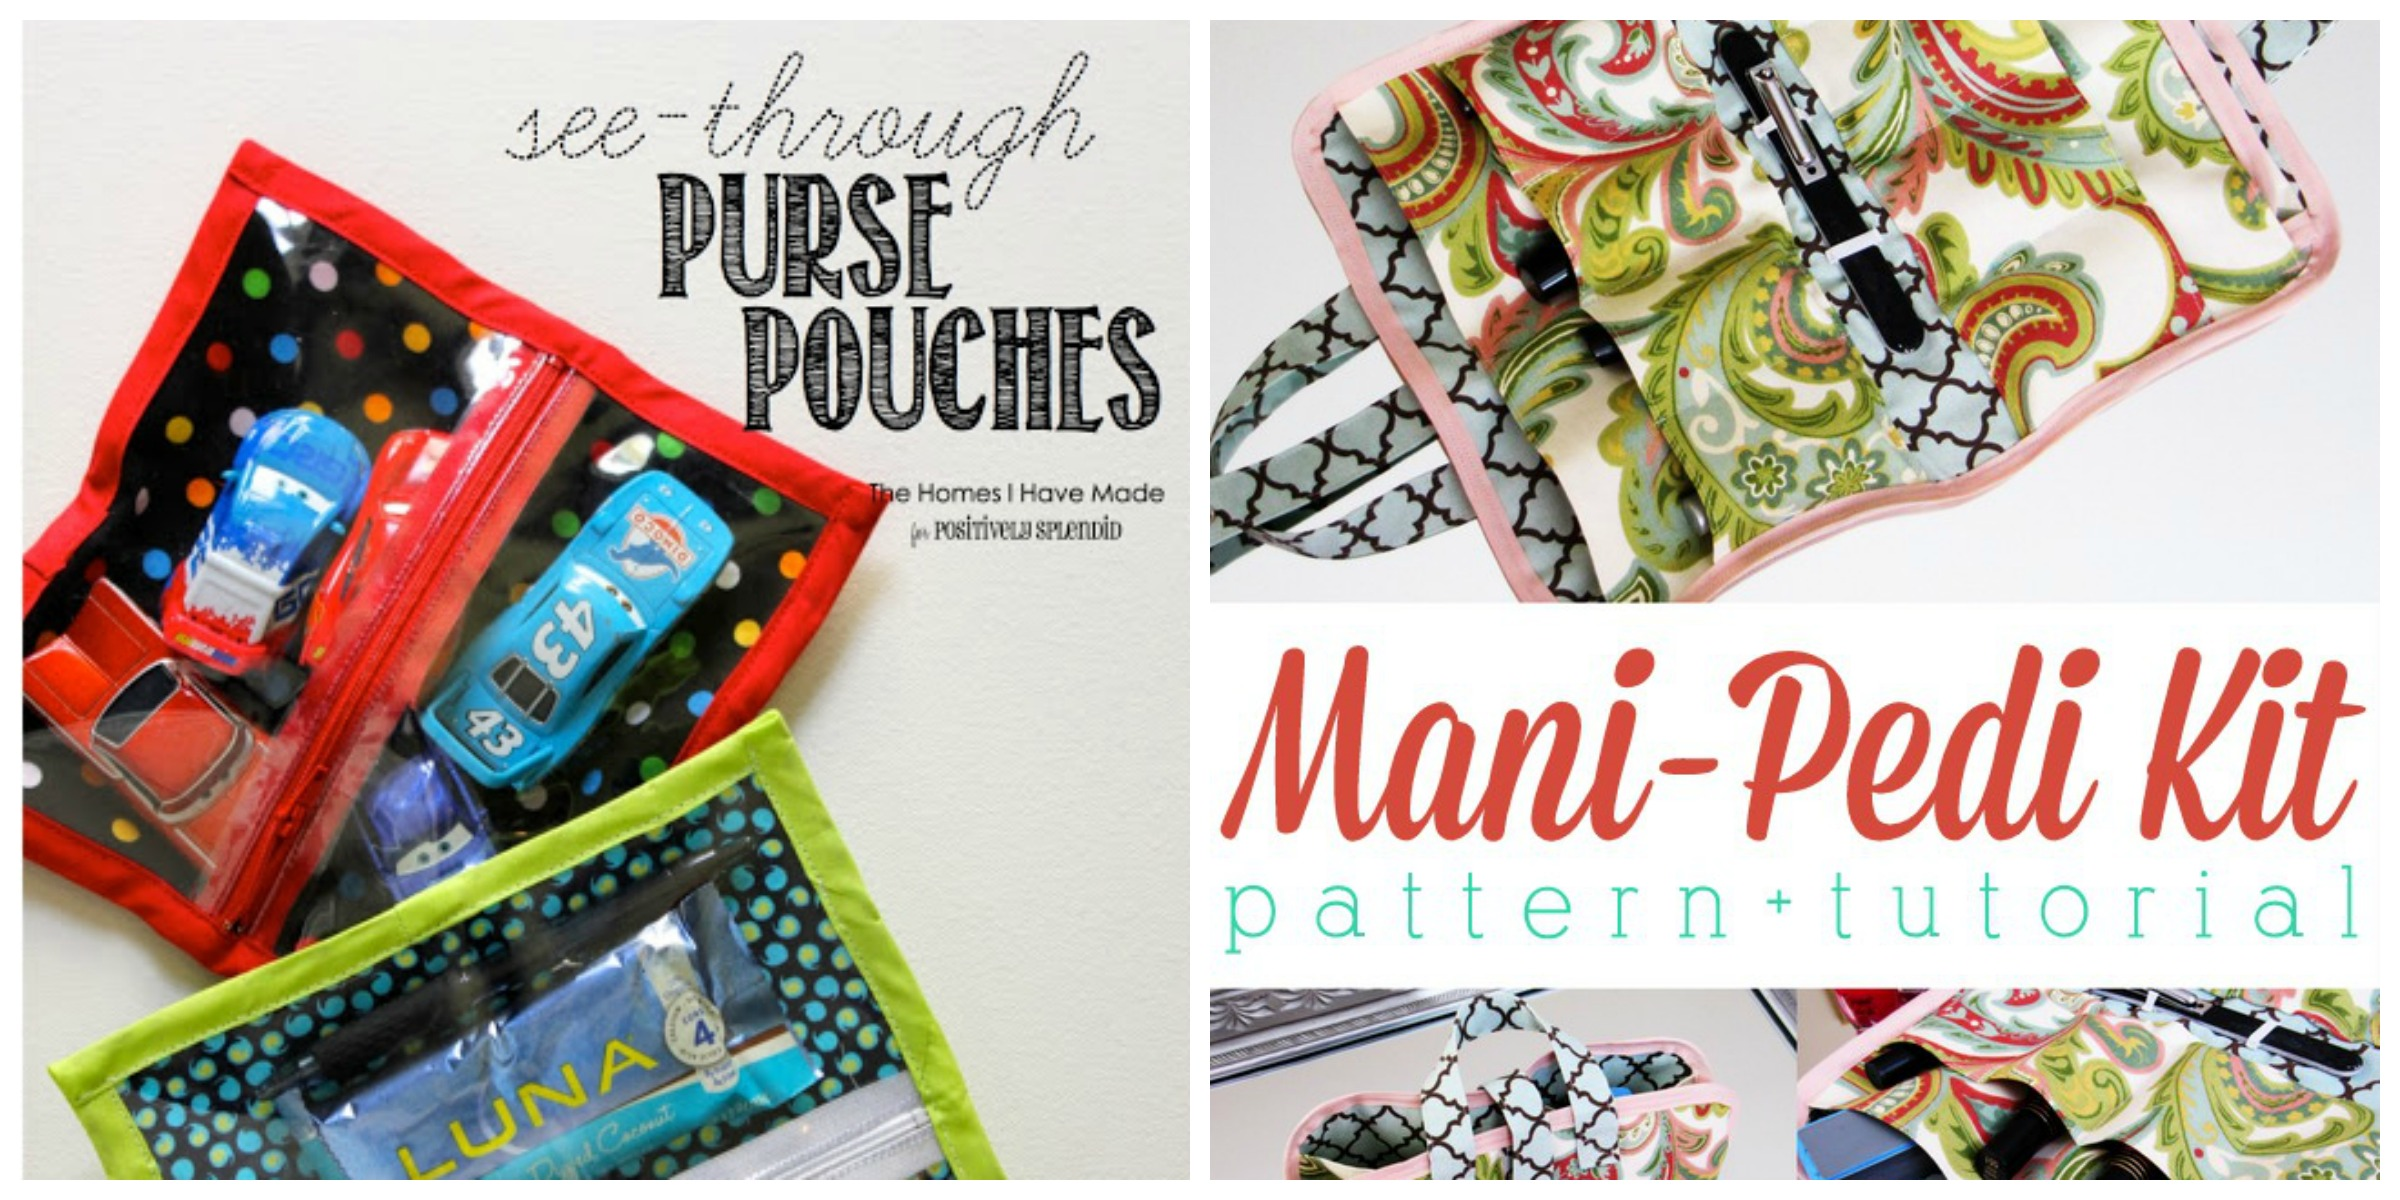 purse pouches